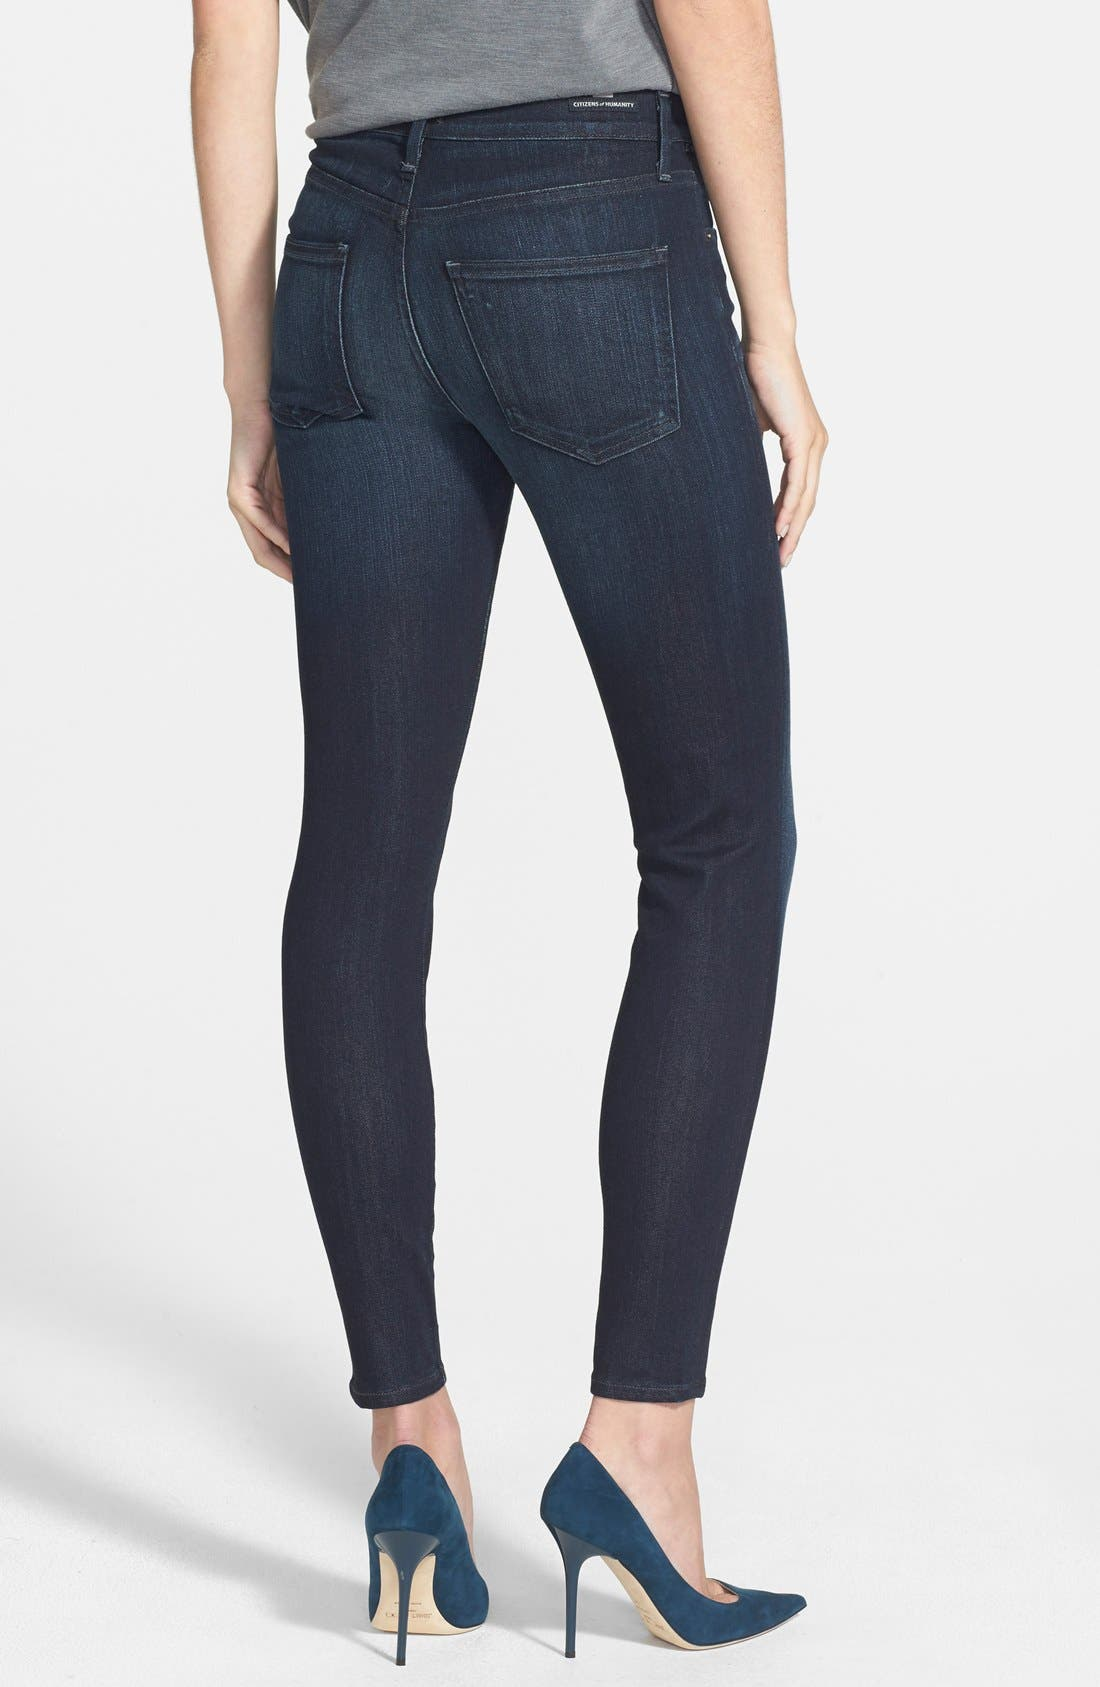 Alternate Image 2  - Citizens of Humanity 'Rocket' High Rise Skinny Jeans (Space) (Petite)